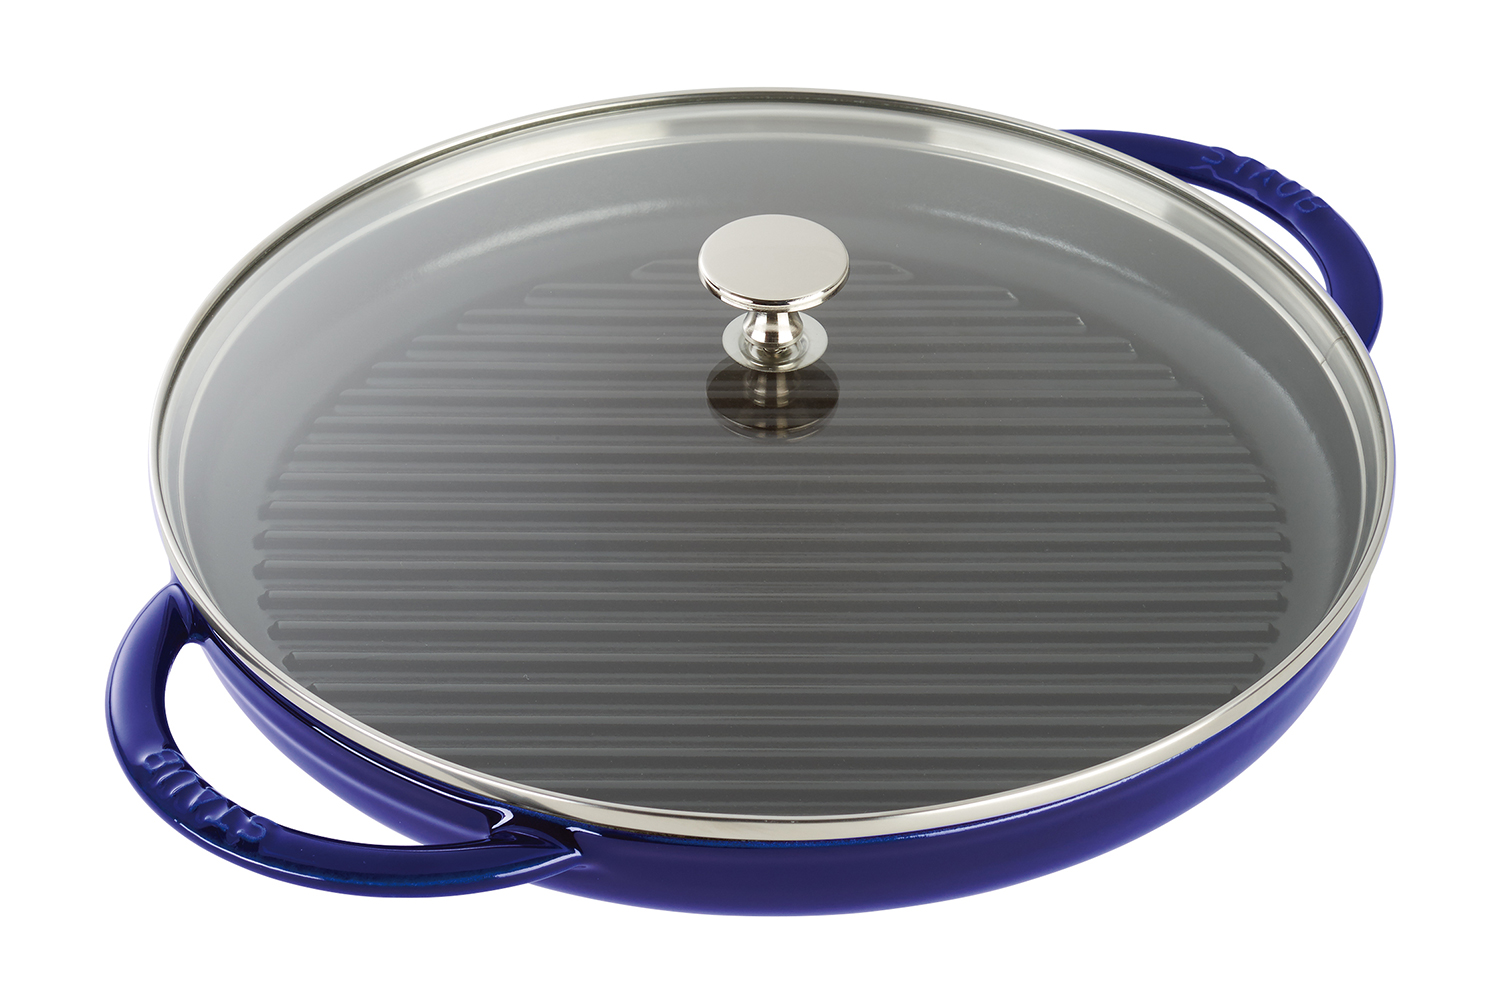 Staub Cast Iron 12 inch Steam Grill - Dark Blue